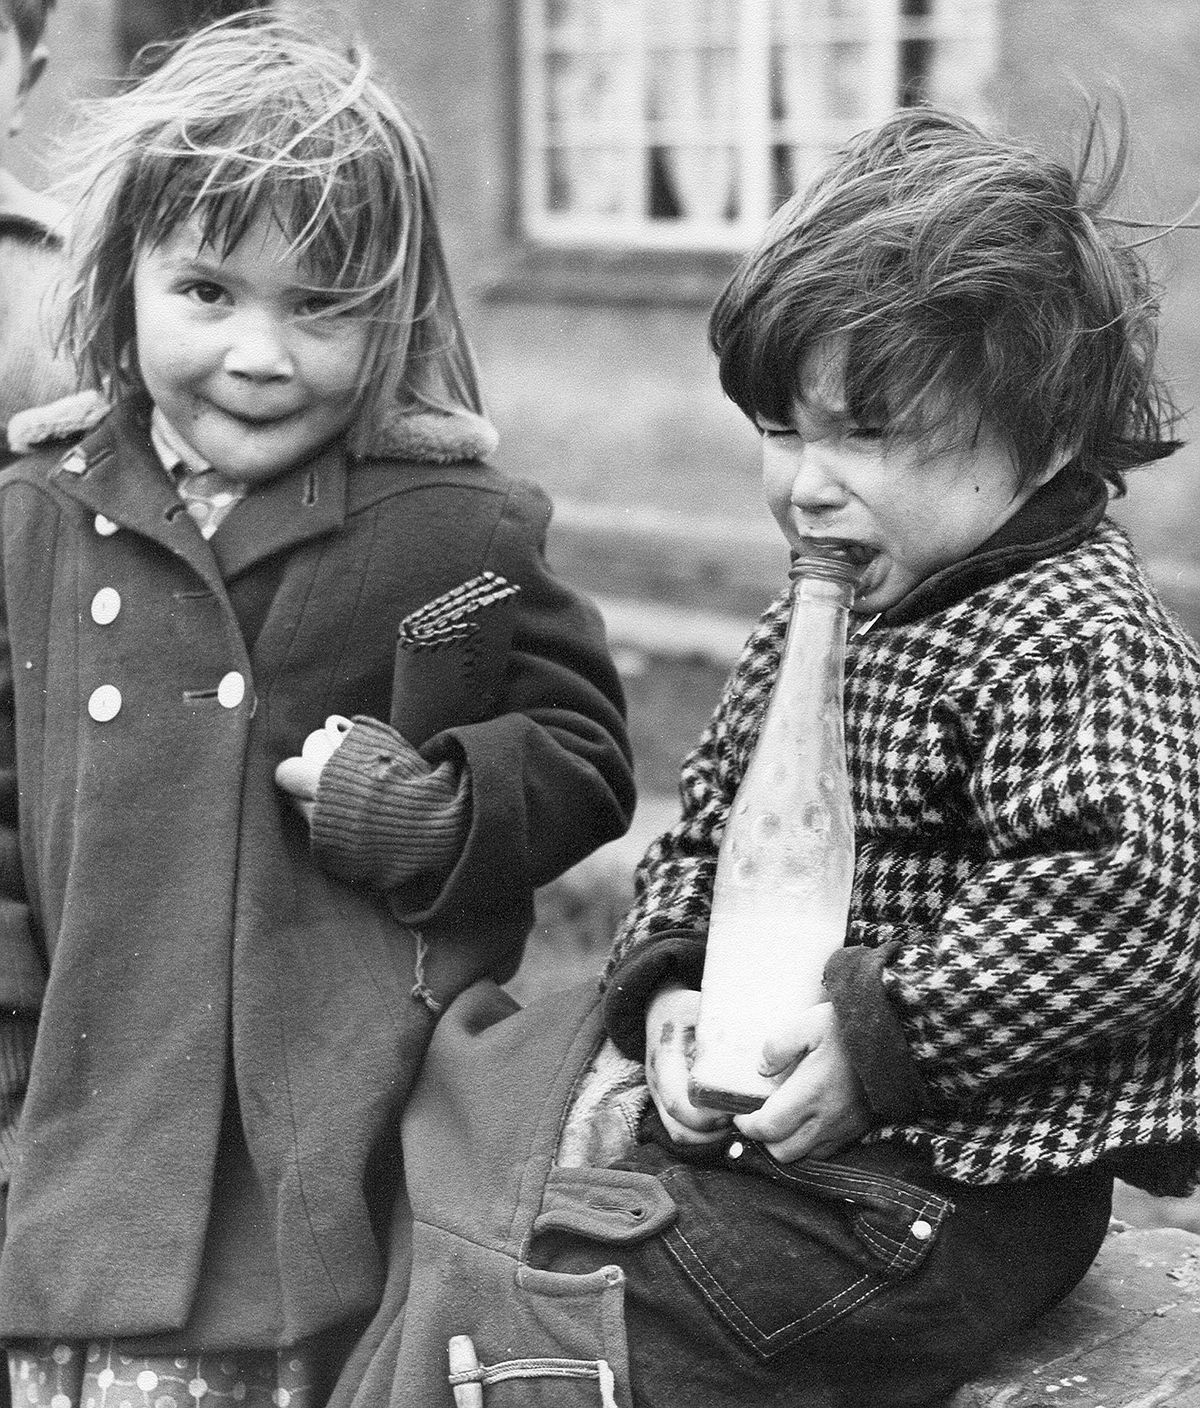 Two Black Country kids